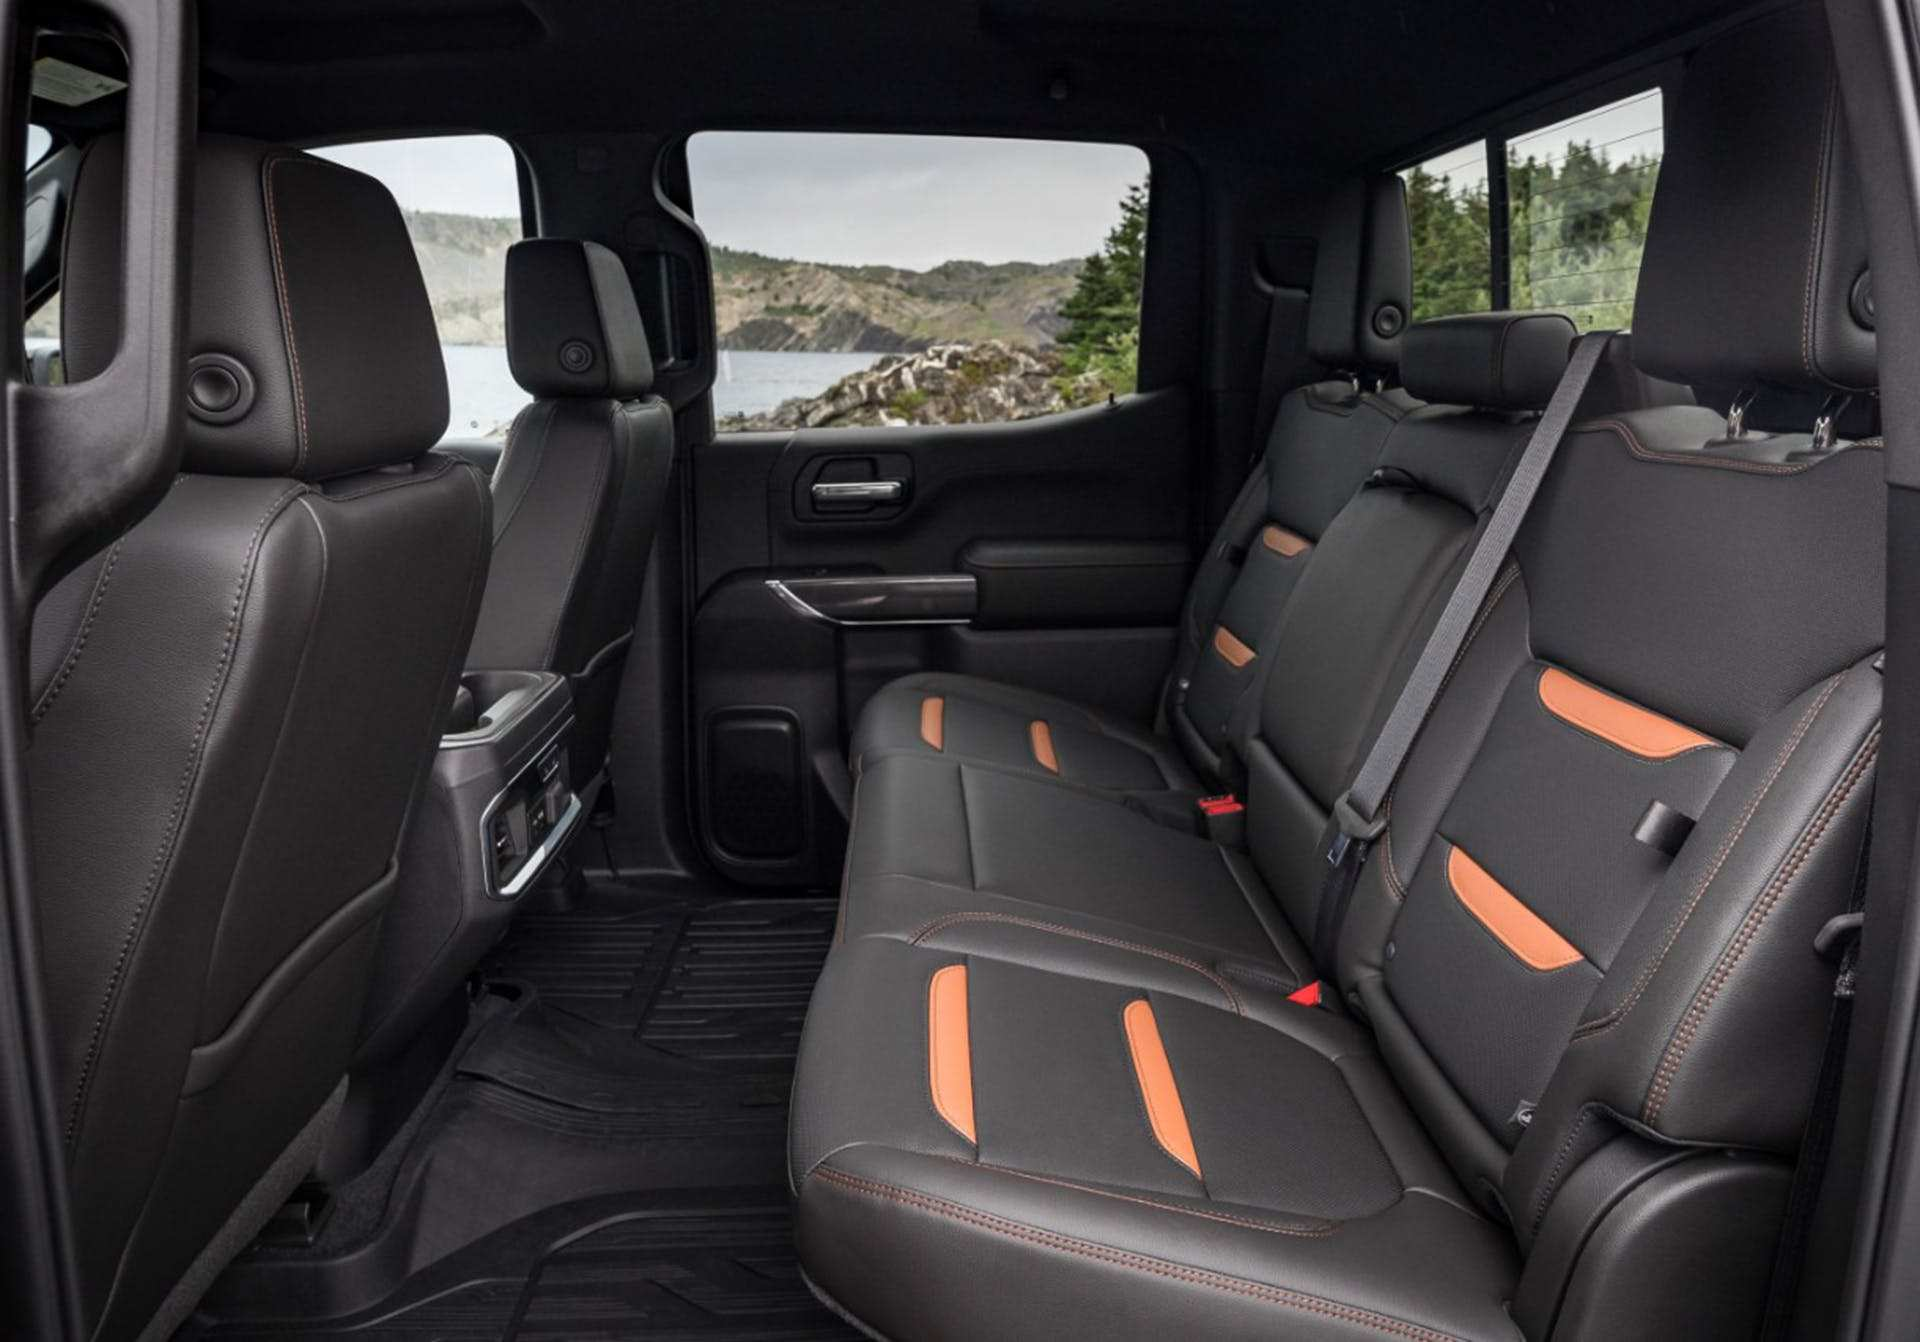 65 New 2019 Gmc 1500 Interior Price Design And Review